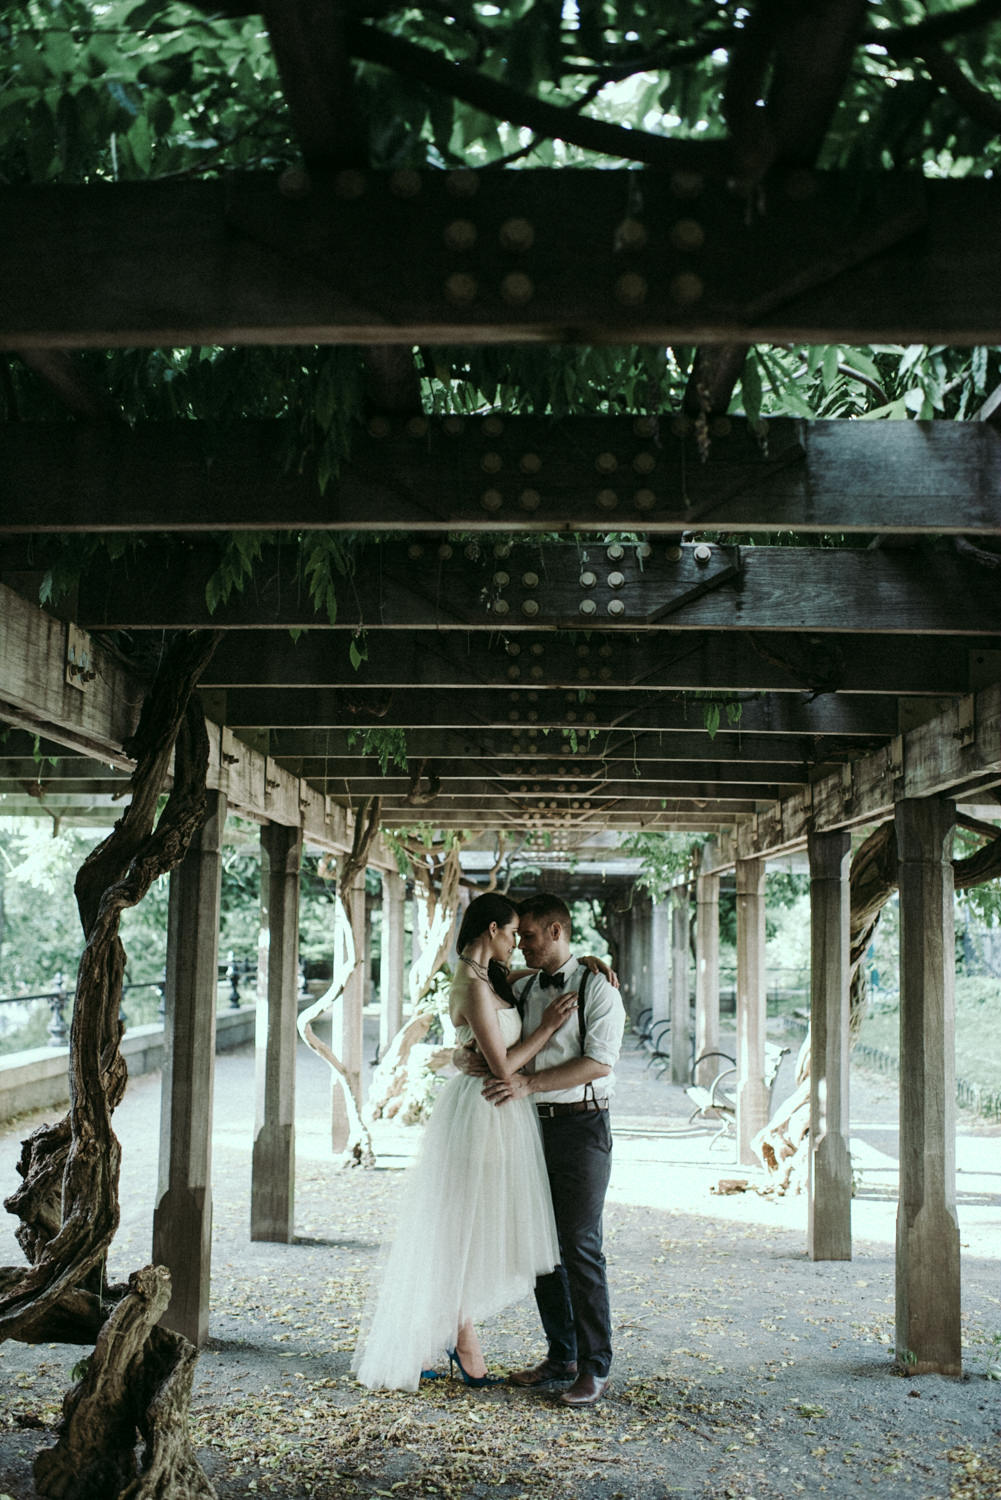 new-york-elopement-engagement-pictures-giancarlo-photography-47.jpg